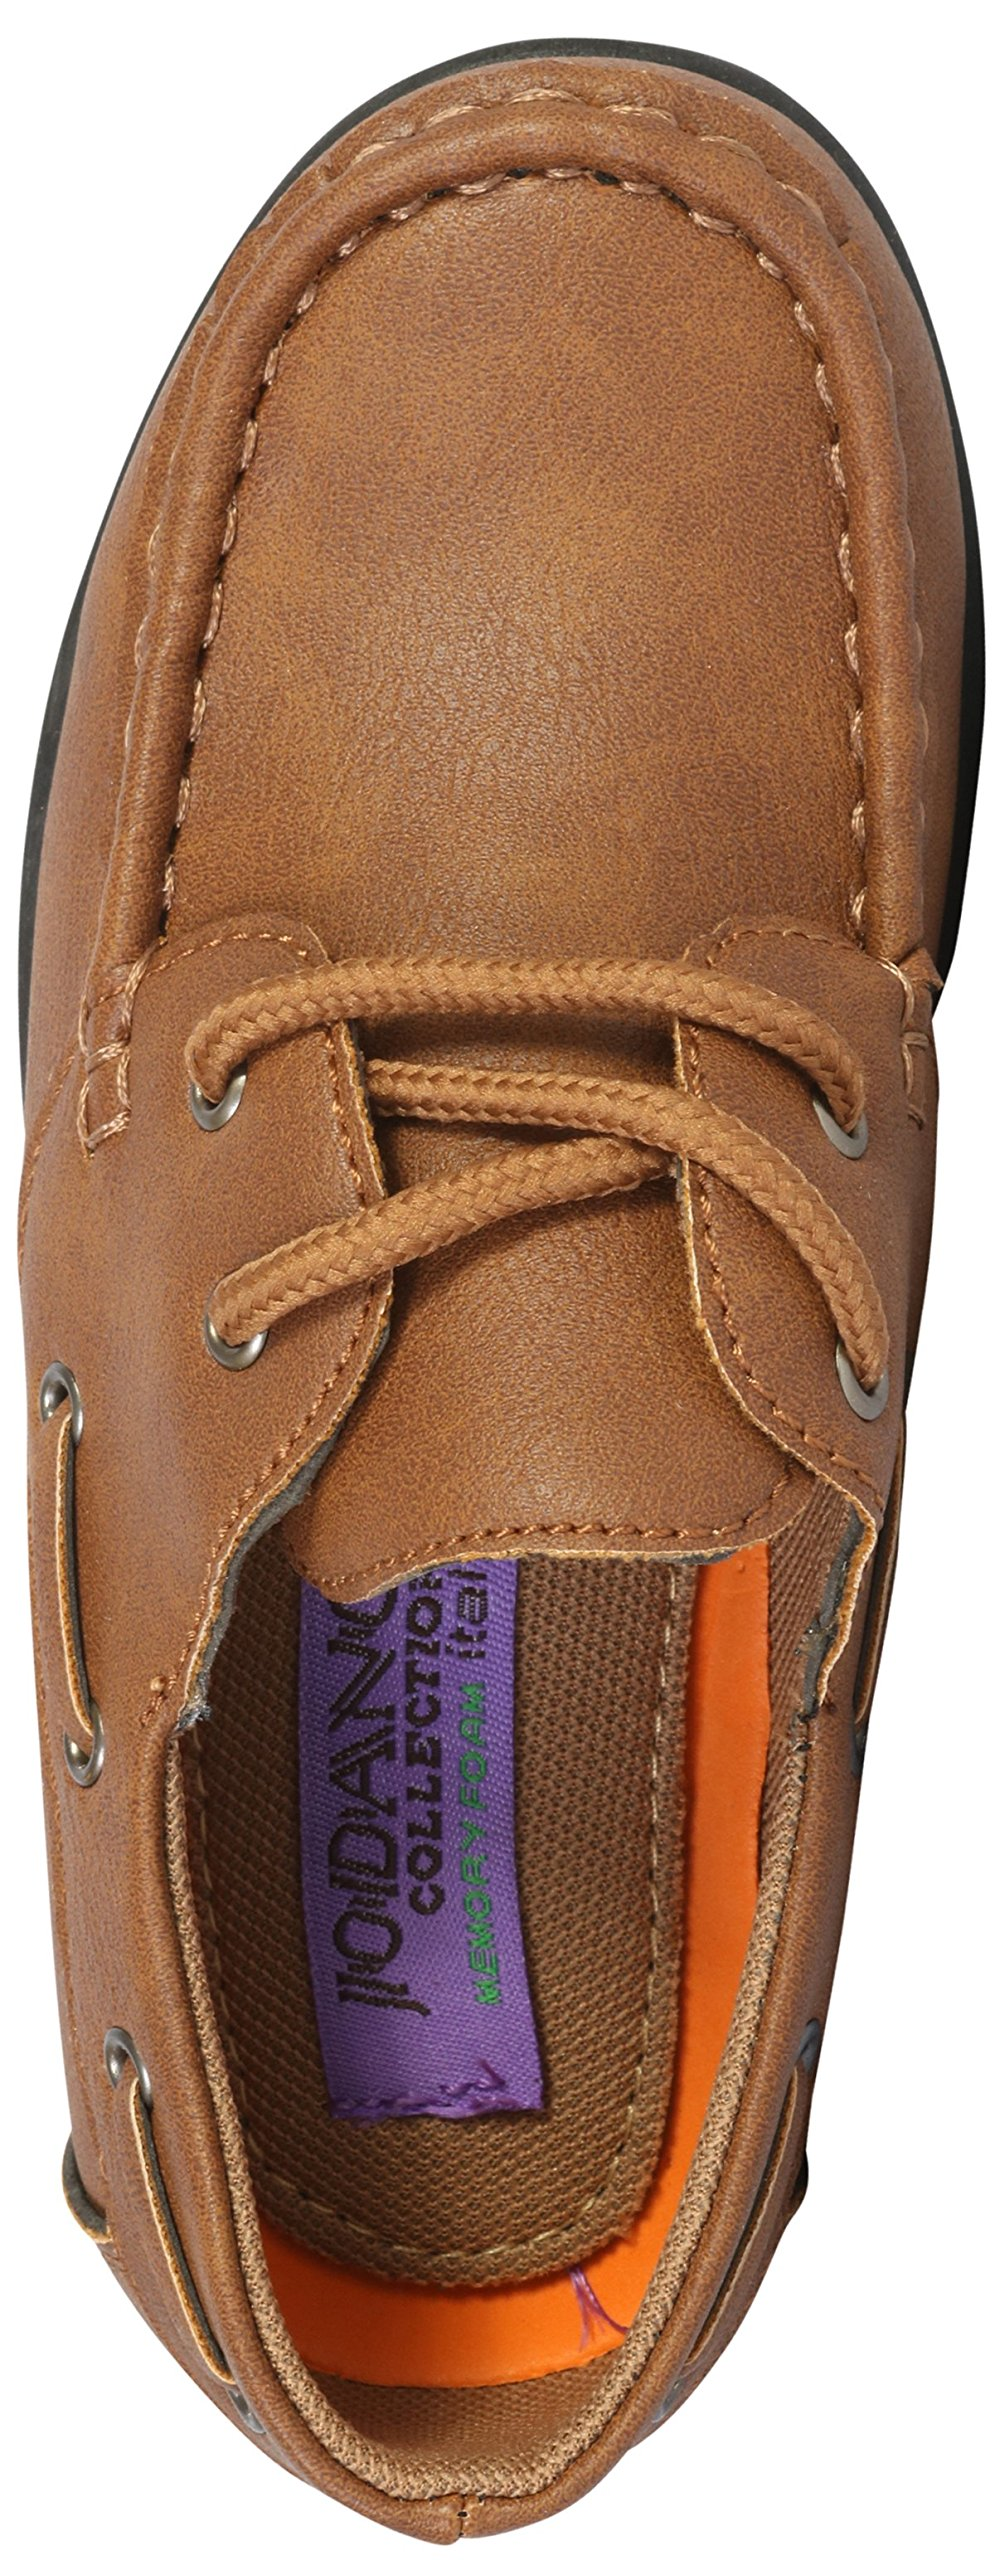 Jodano Collection Boys Slip on Boat Shoes with Memory Foam Insole, Tan, 10 M US Toddler' by Jodano Collection (Image #3)